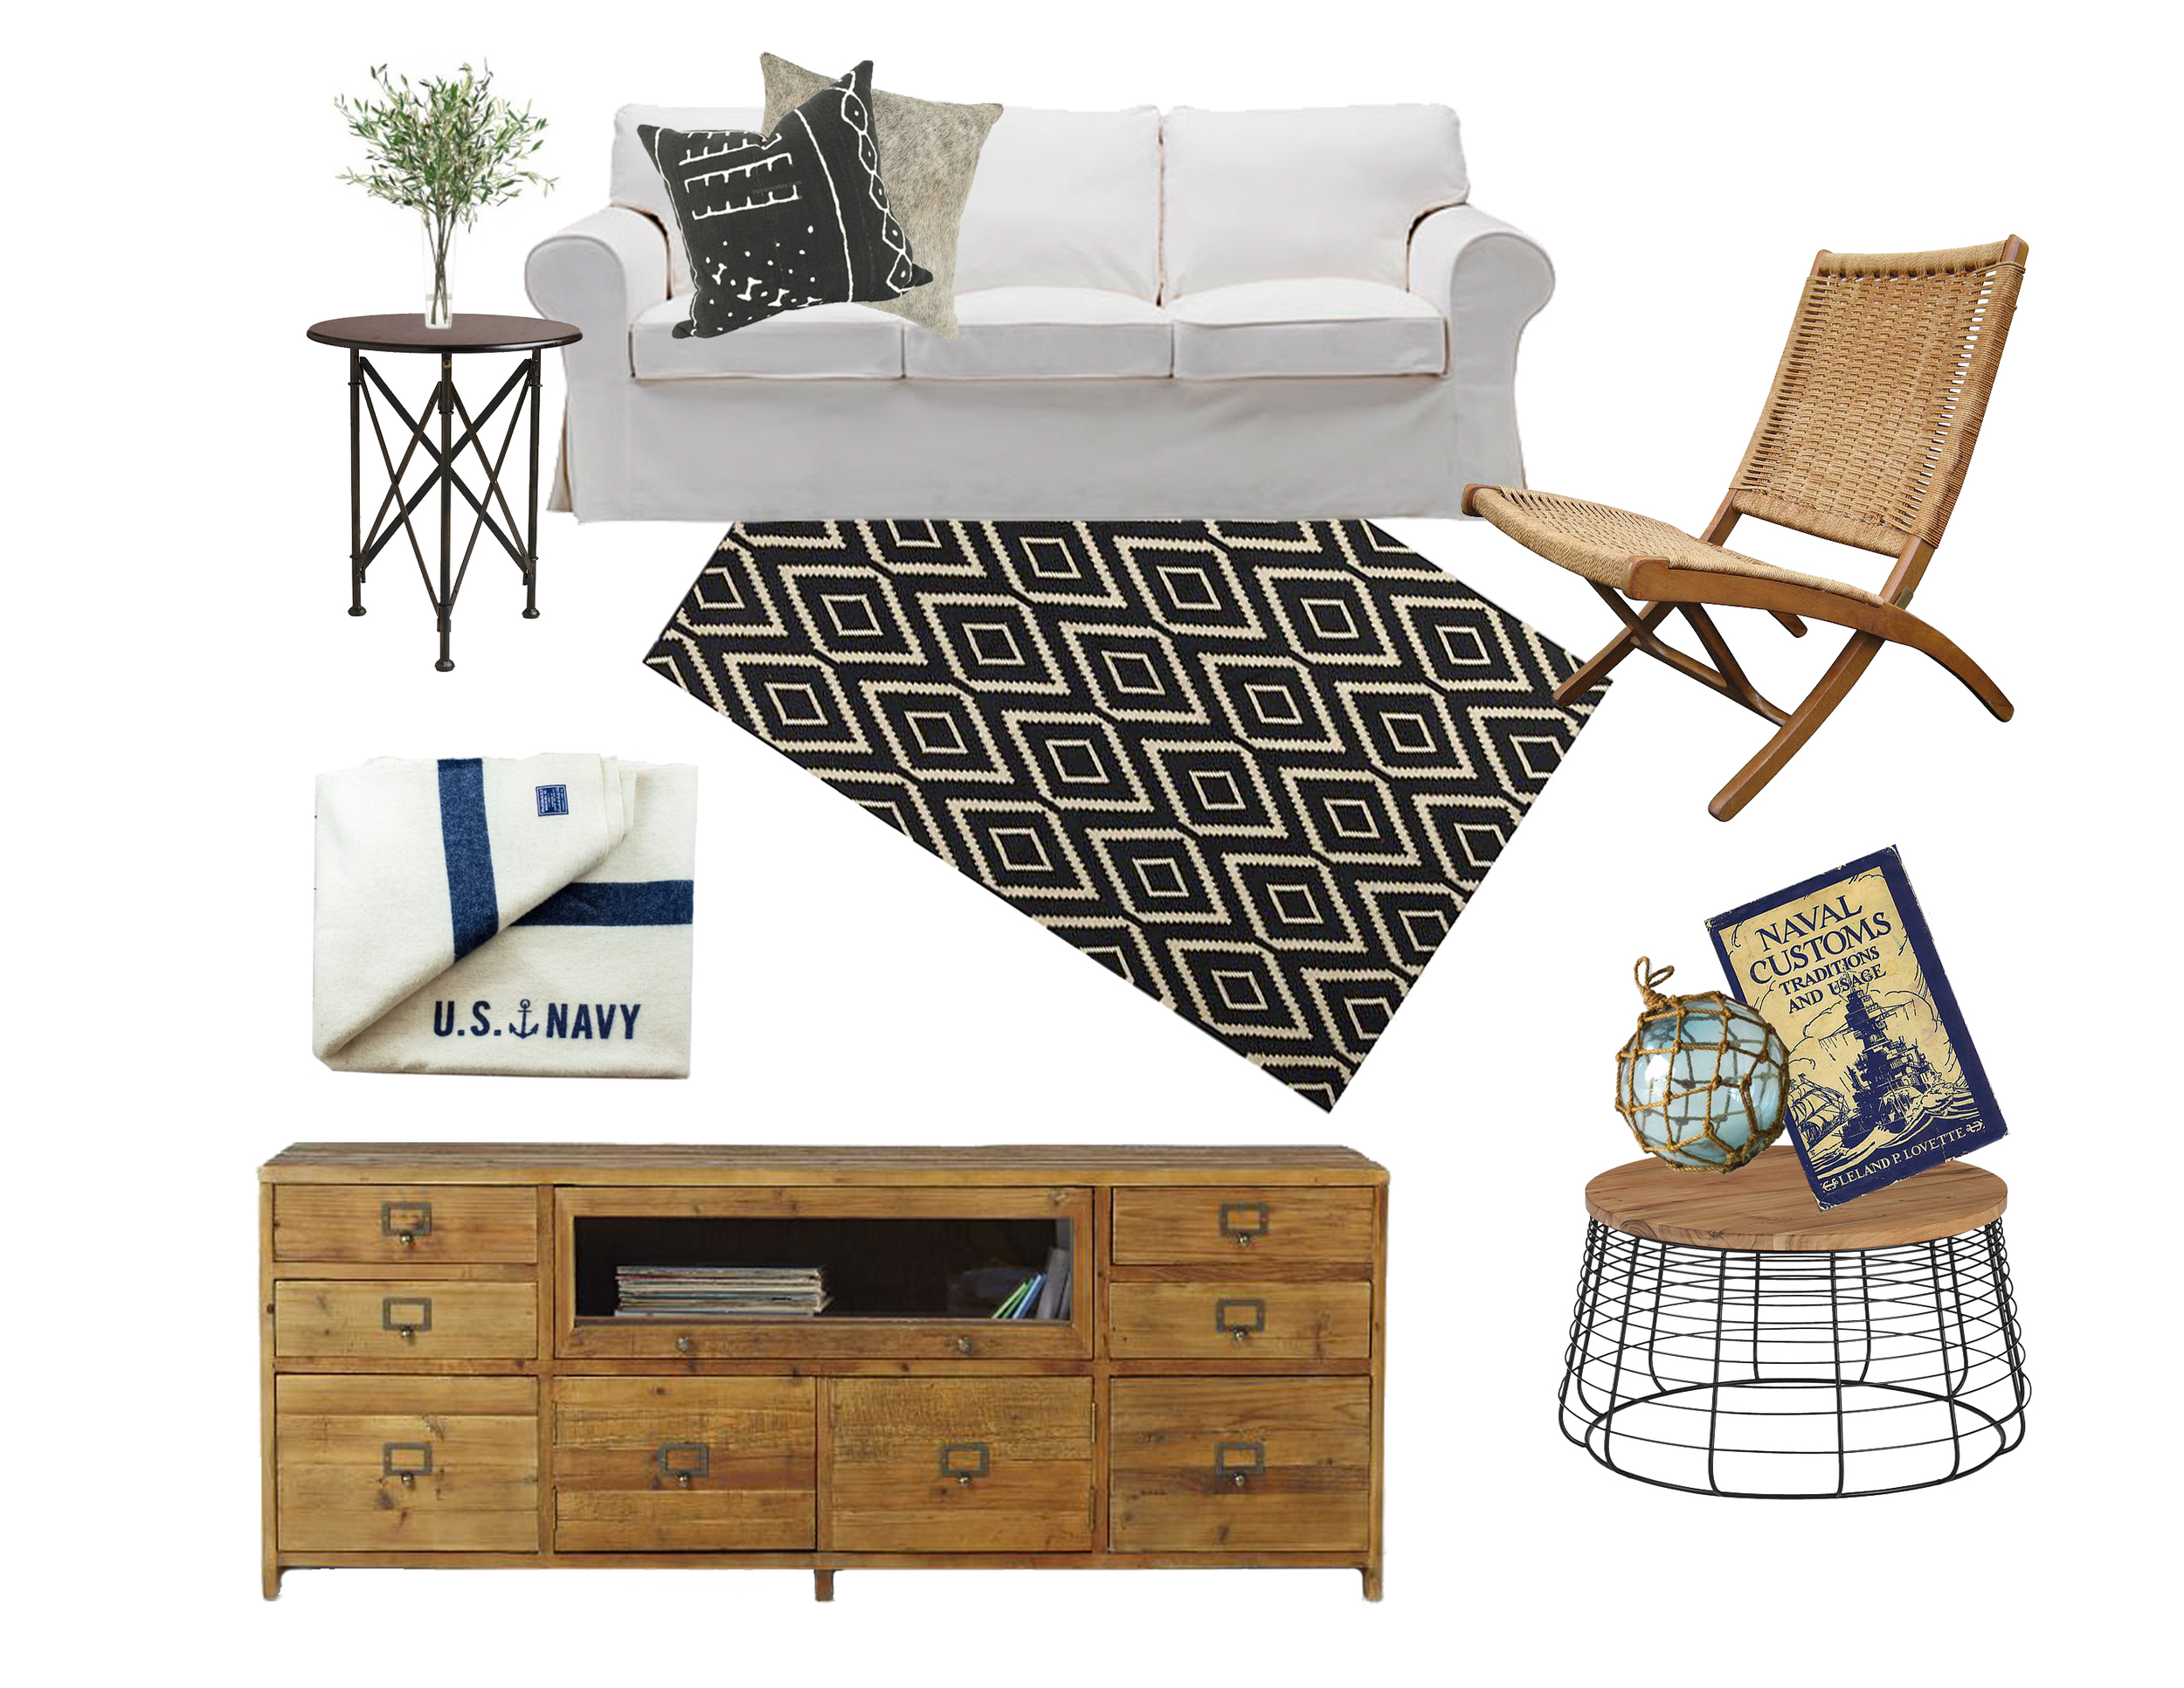 Side Table  // Couch (already owned- similar ) //  Pillow 1  //  Pillow 2  //  Side Chair  //  Rug  //  Blanket  //  Coffee Table  //  Console